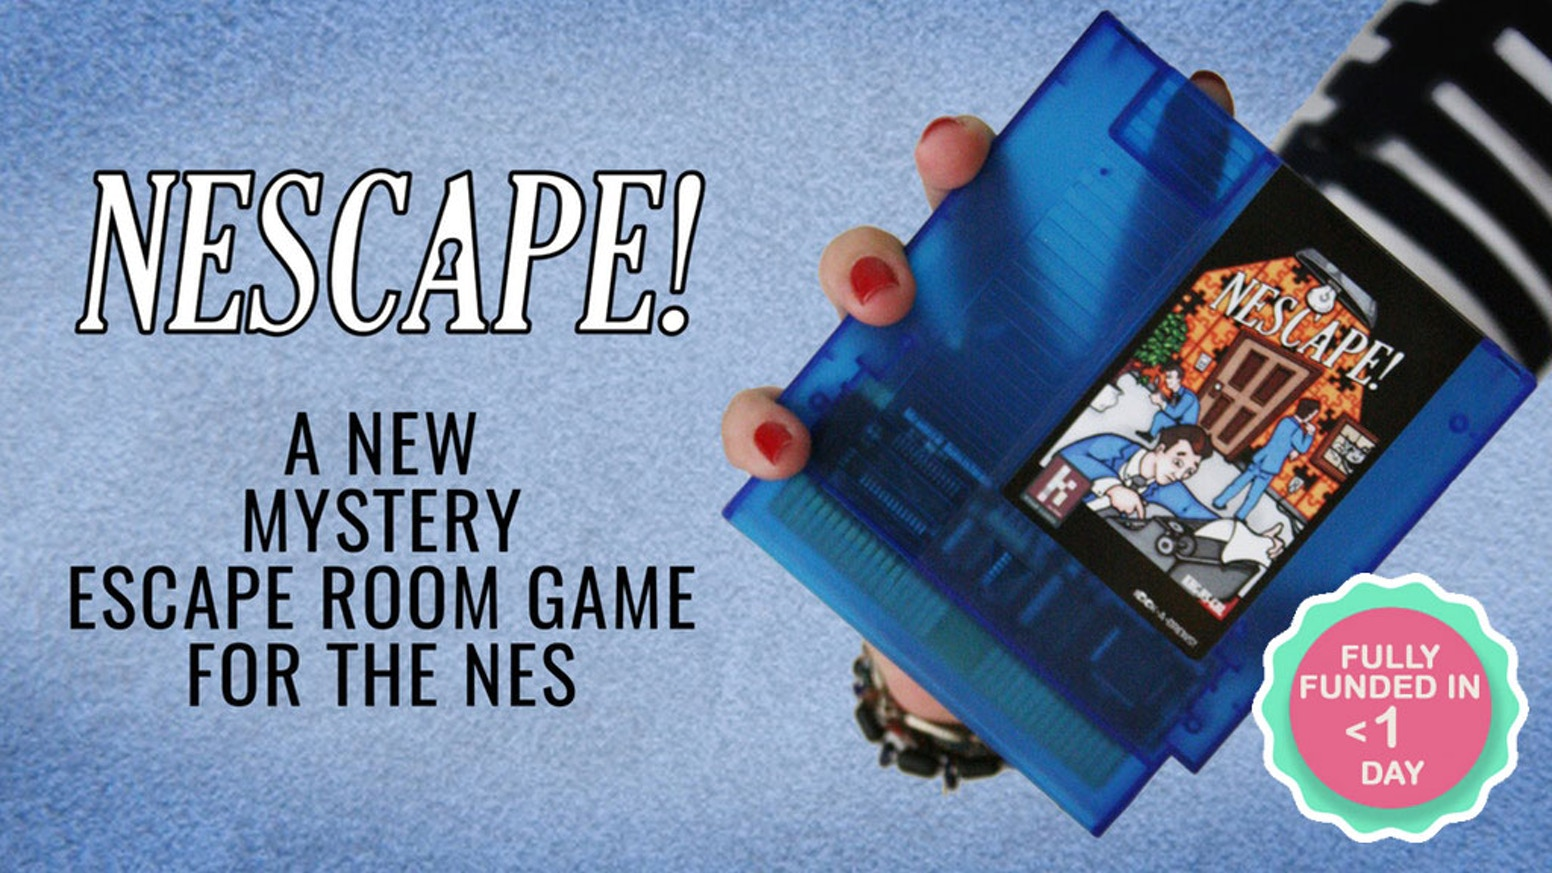 NEScape! is a mystery escape room game for the original NES. Playable on a real NES, as well as Mac, PC, and Linux!